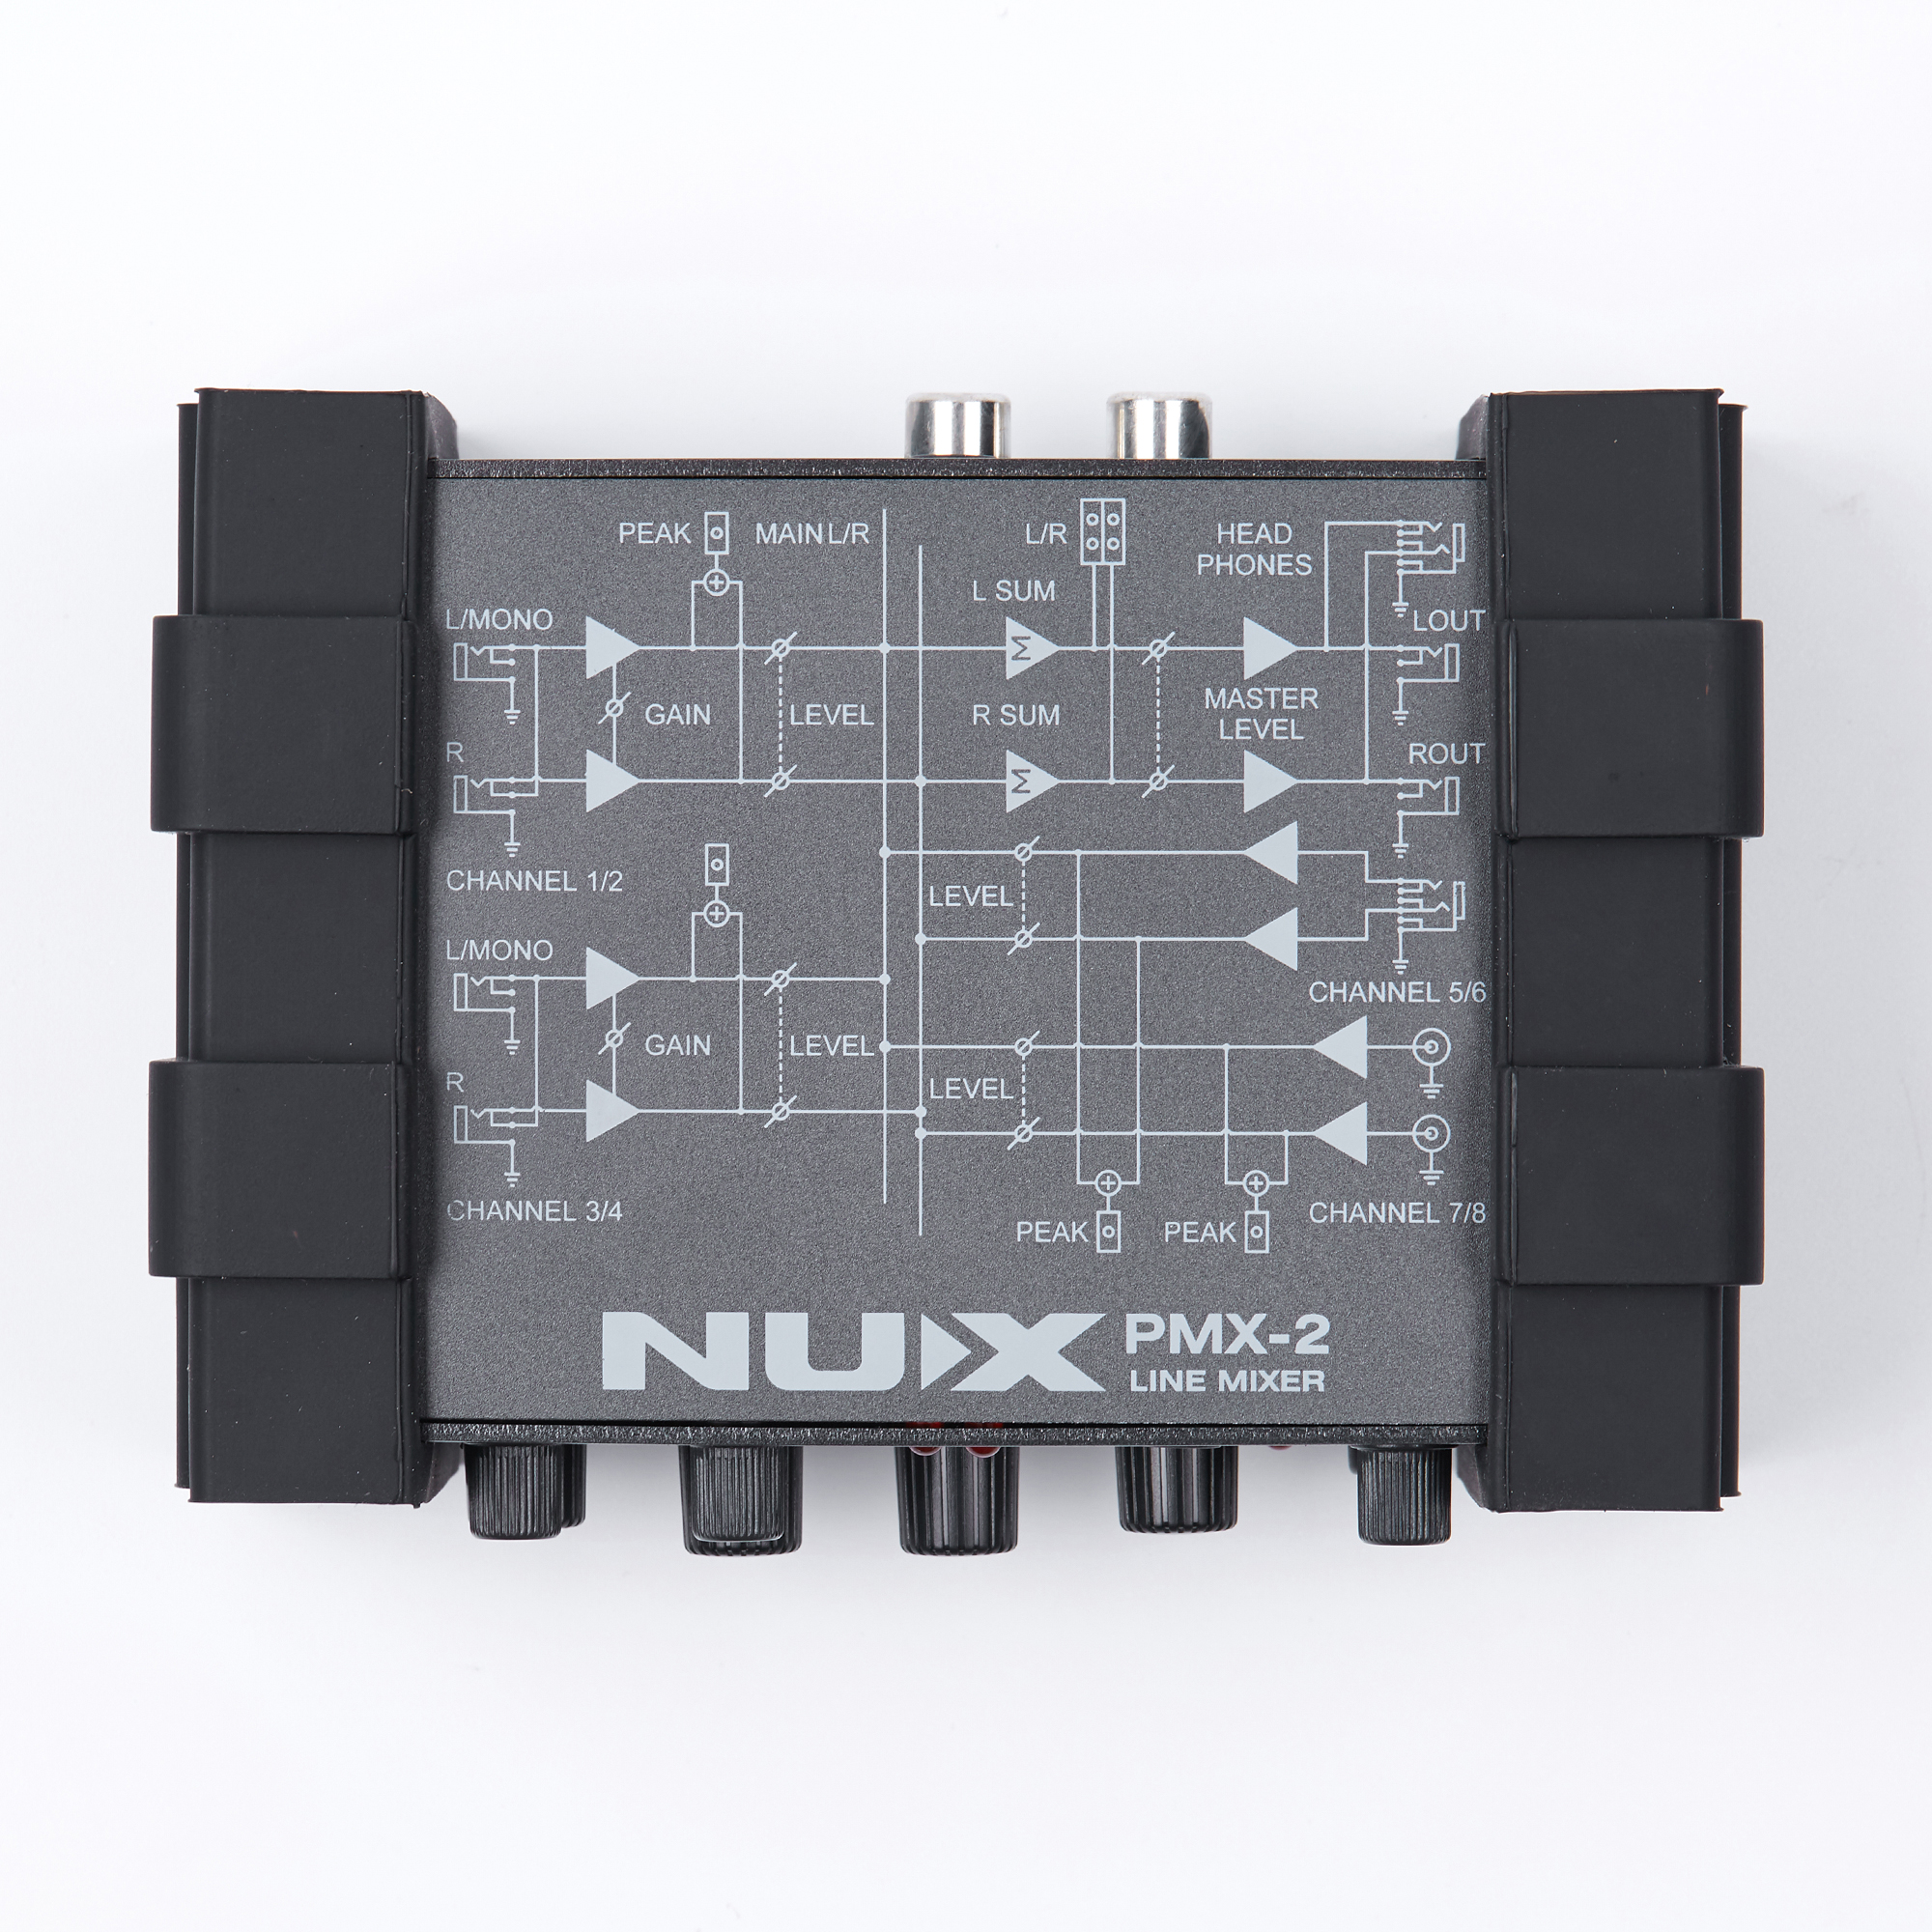 Gain Control 8 Inputs and 2 Outputs NUX PMX-2 Multi-Channel Mini Mixer 30 Musical Instruments Accessories for Guitar Bass Player футболка стрэйч printio африканские маски 2